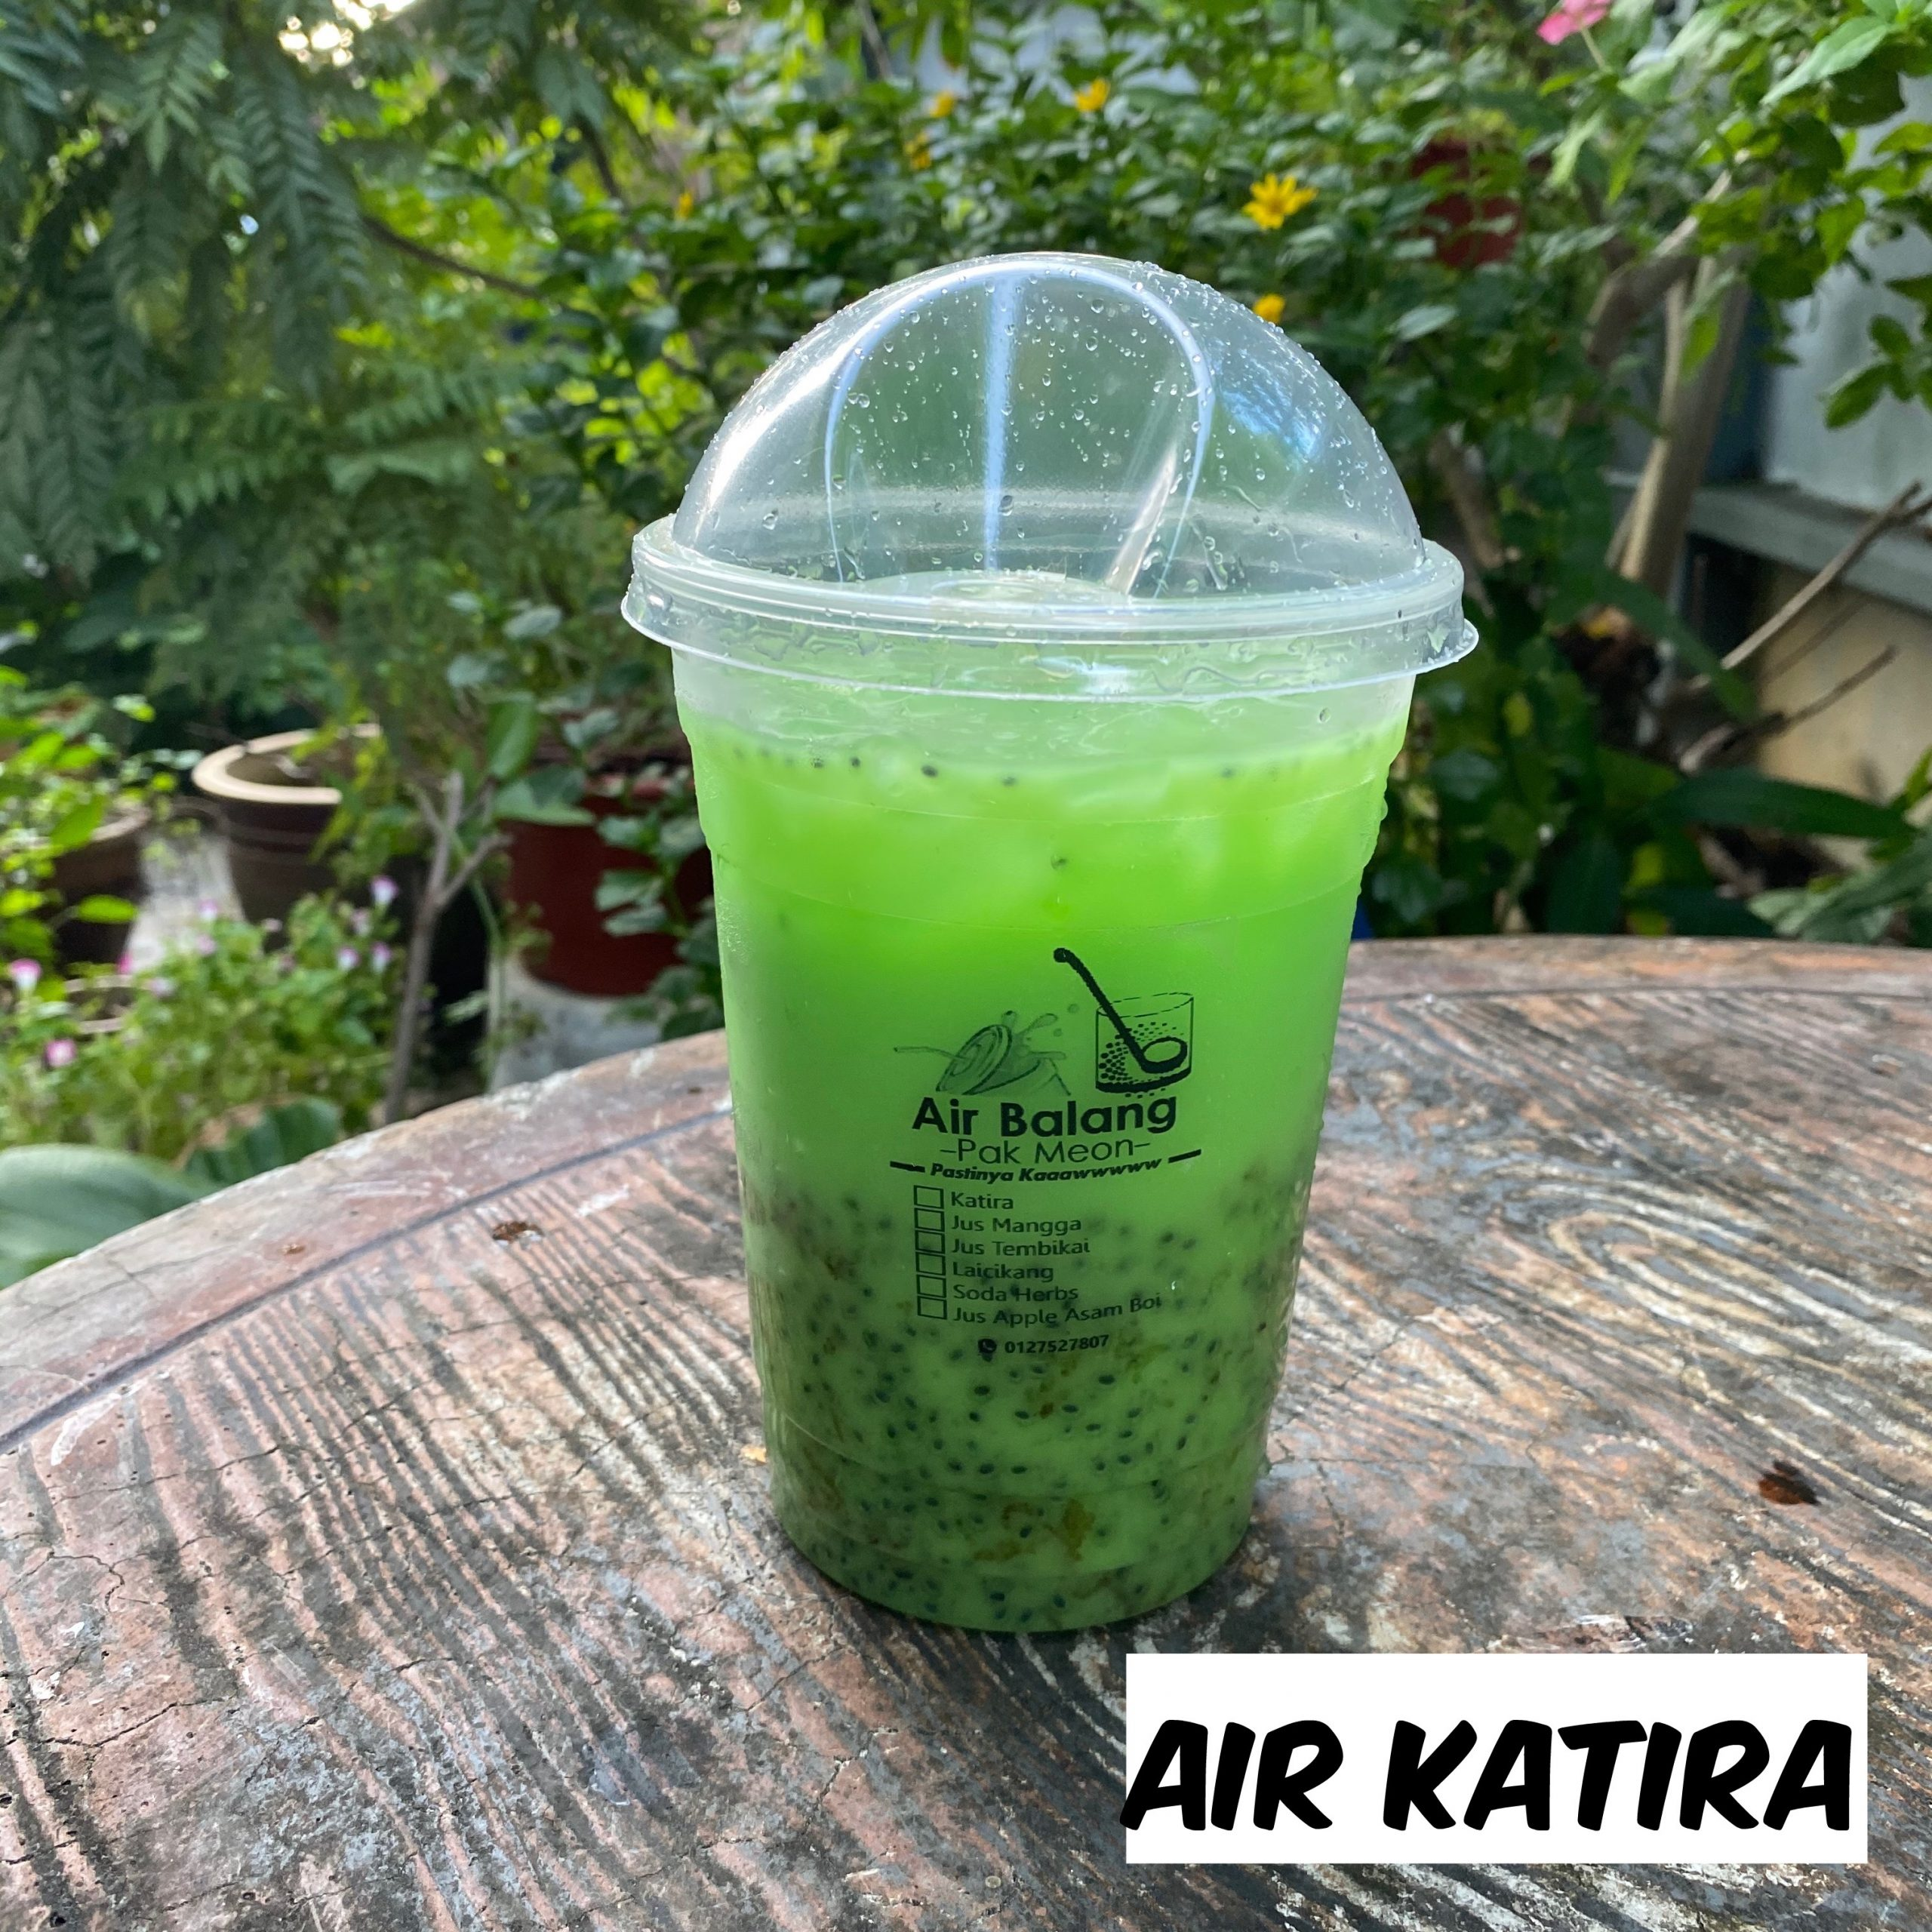 Air Katira